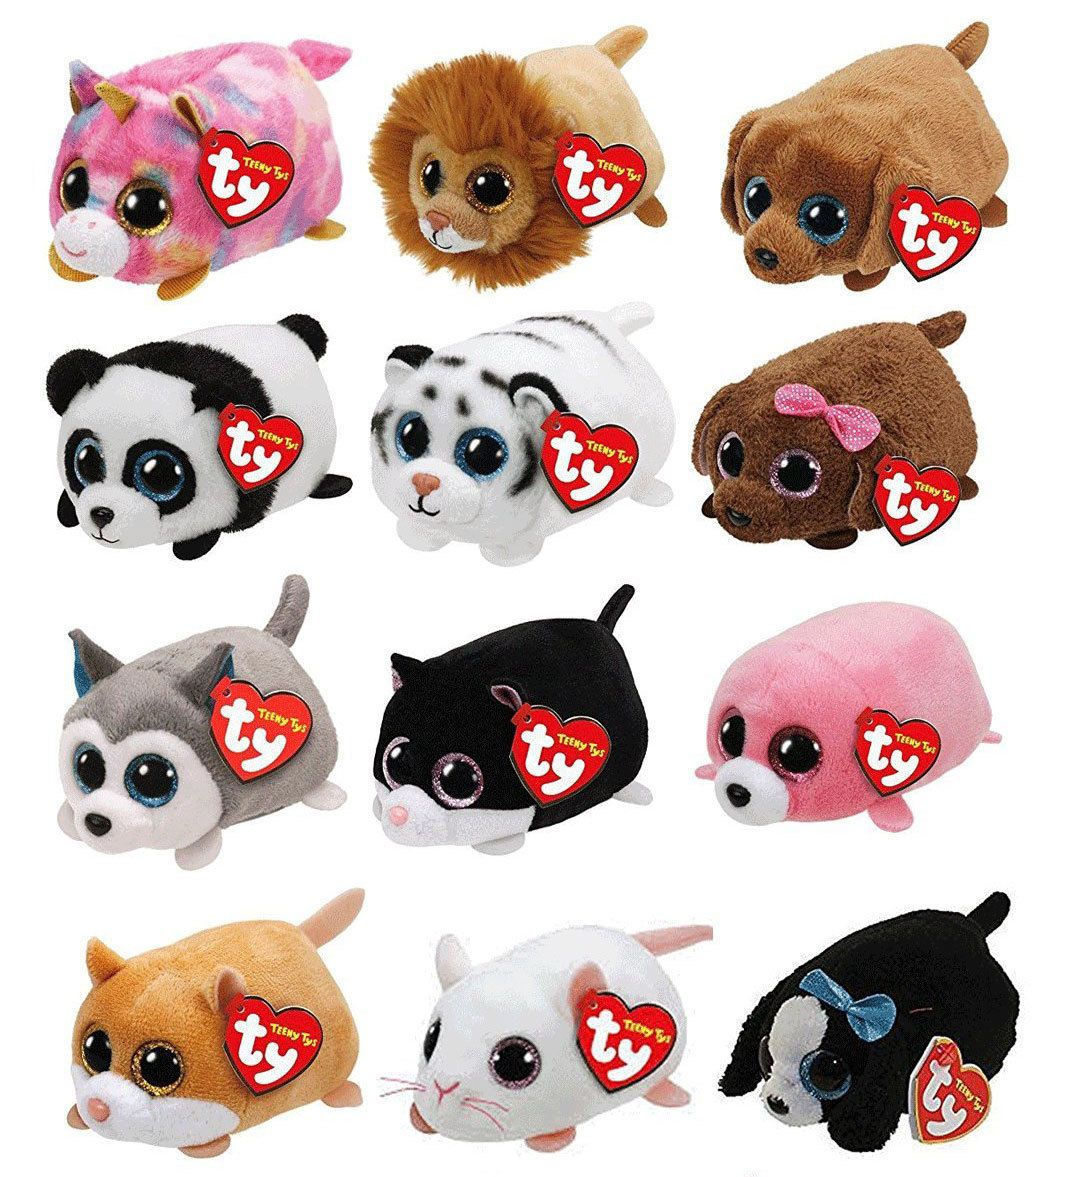 """TY Beanie Boos Teeny Tys Stackable Plush 4/"""" - with Heart Tags SET OF 12"""